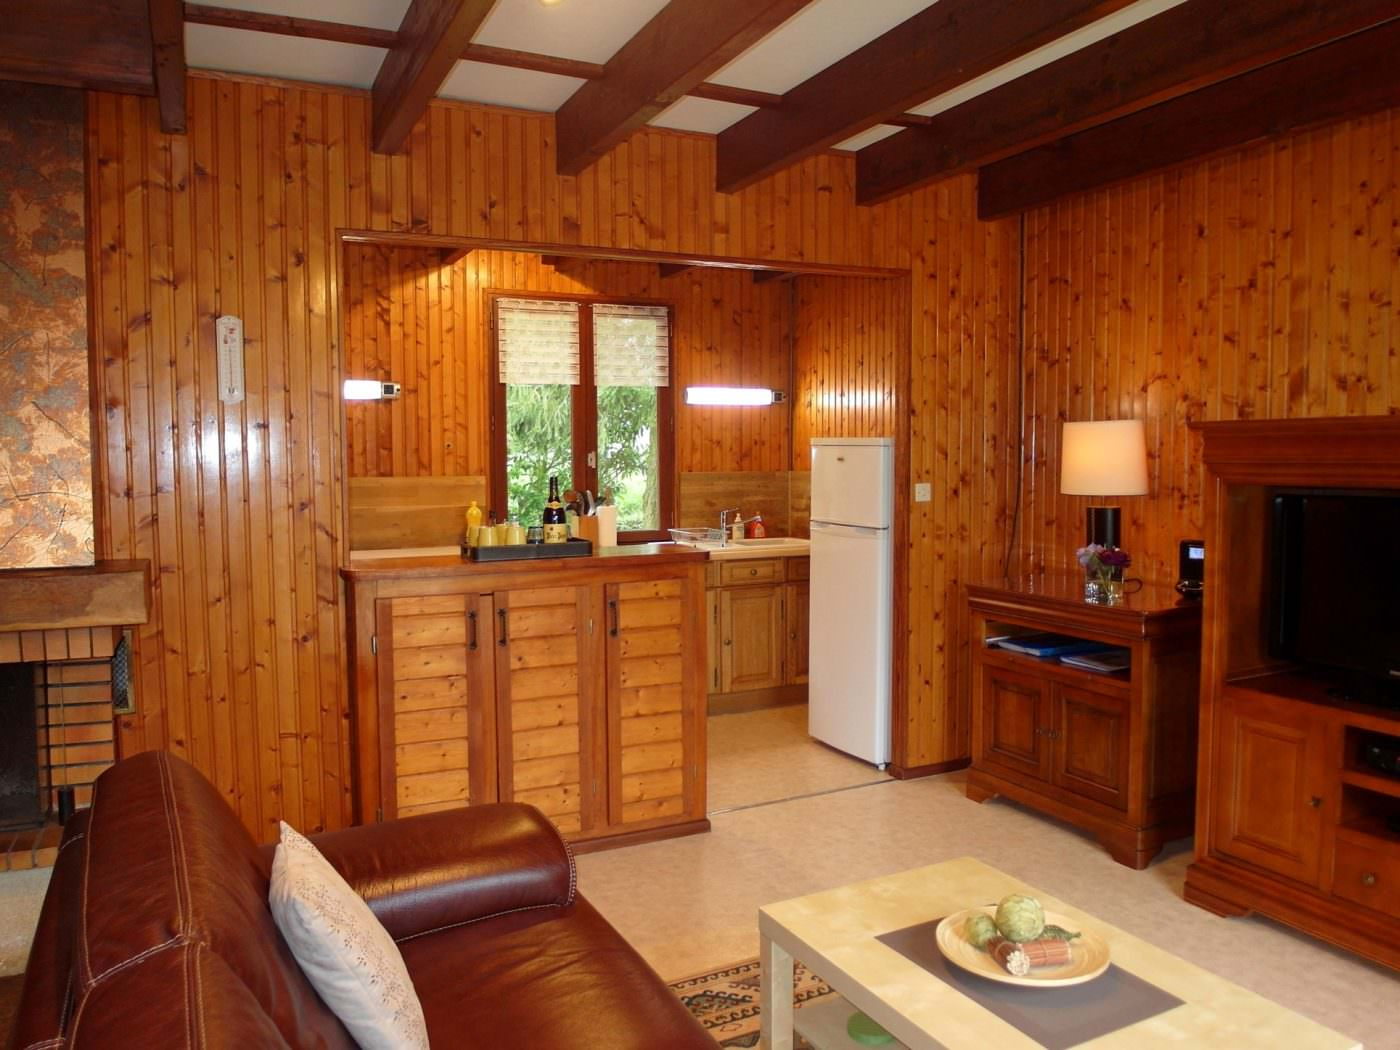 carp-lake-accommodation-kitchen-corner